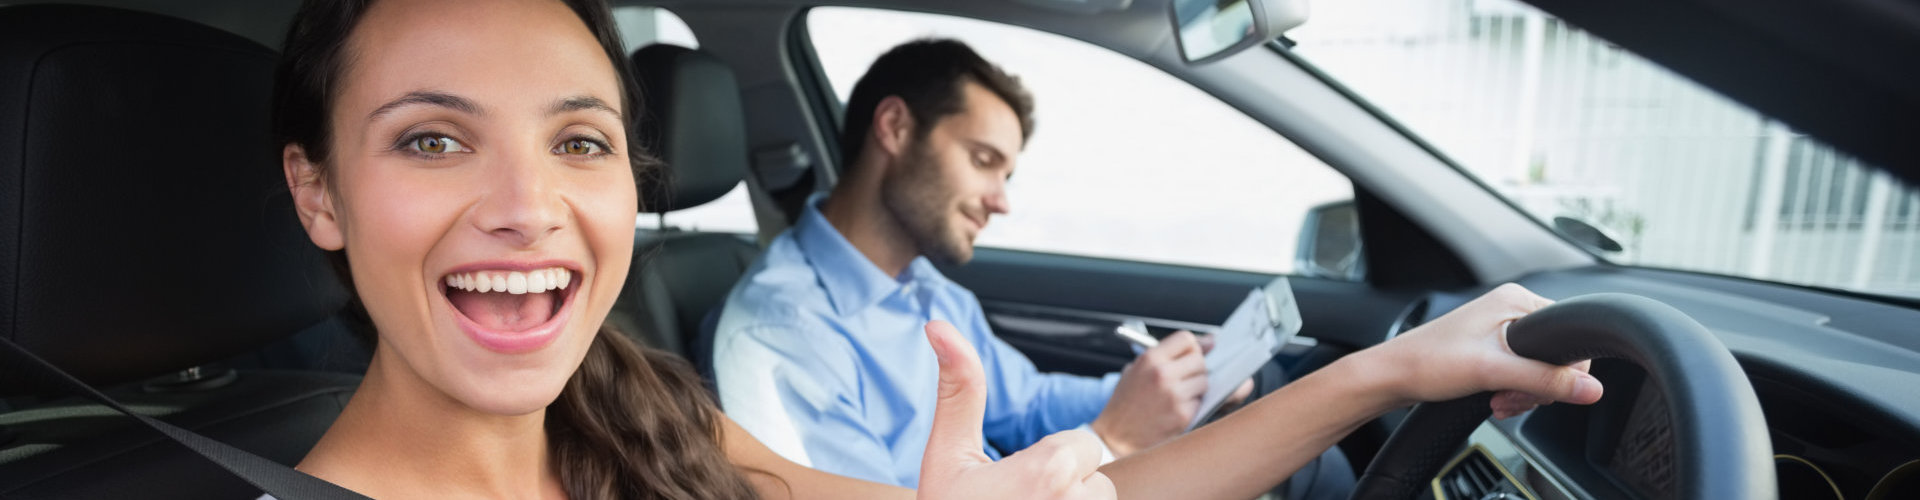 girl raising her thumb while in a driving lesson